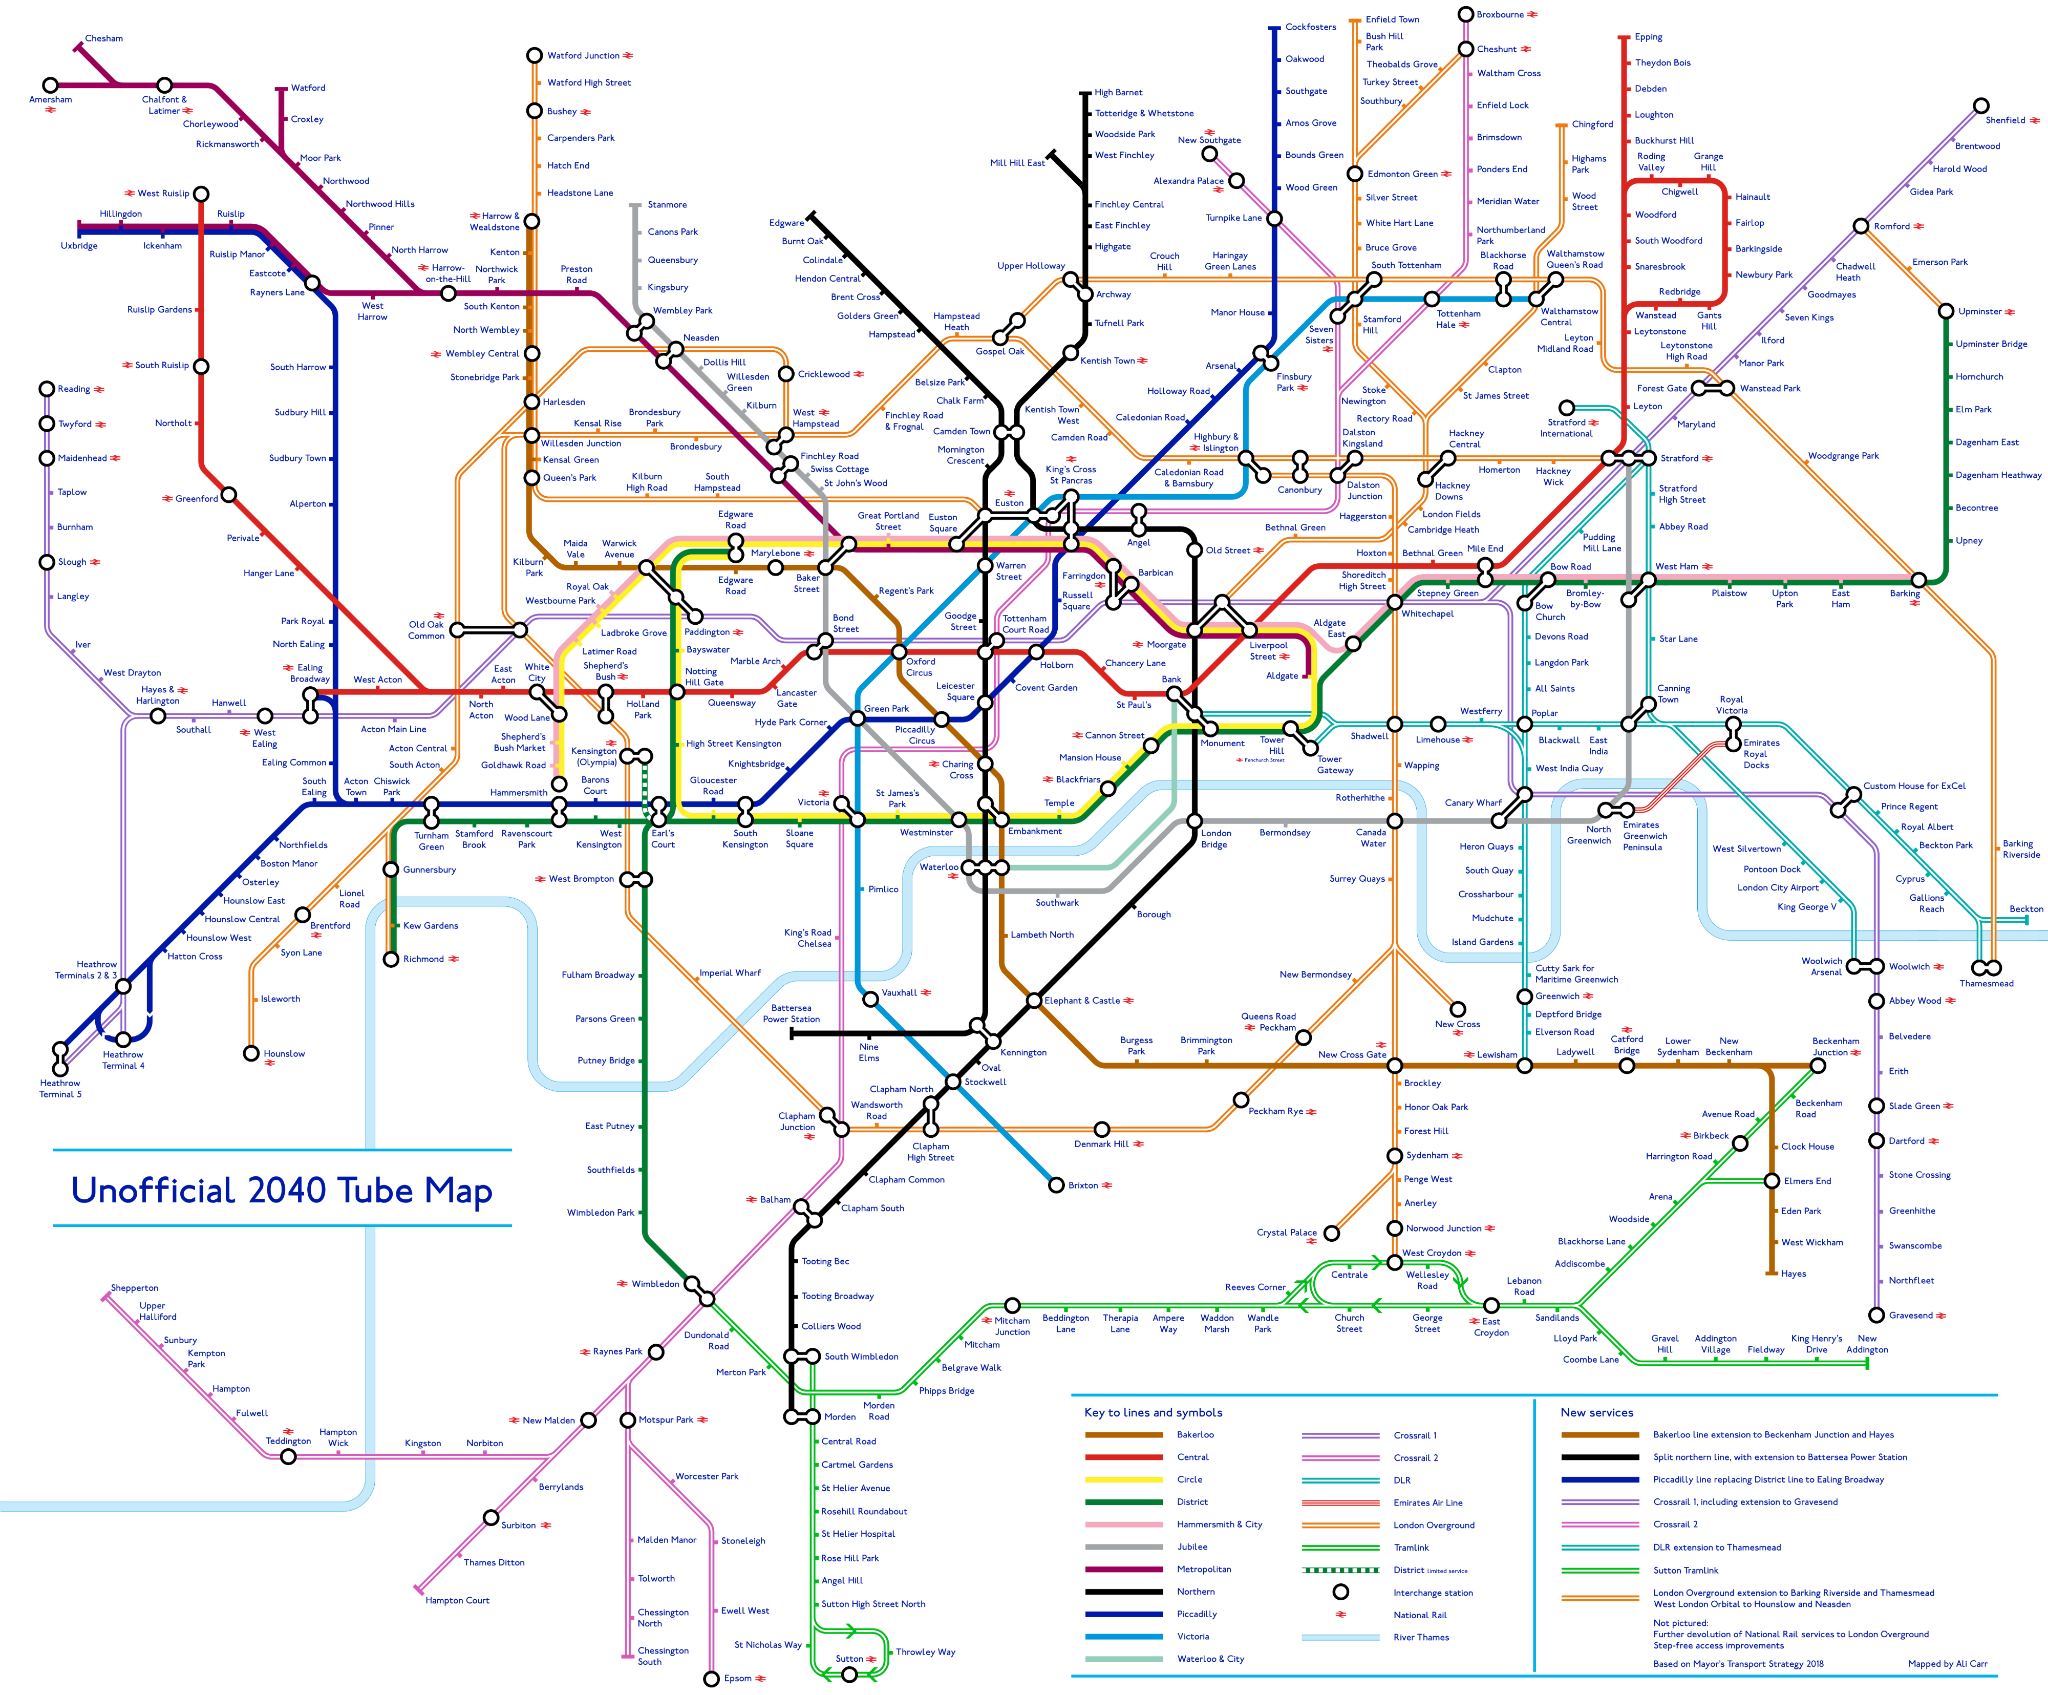 Here's what the London tube map could look like in 2040